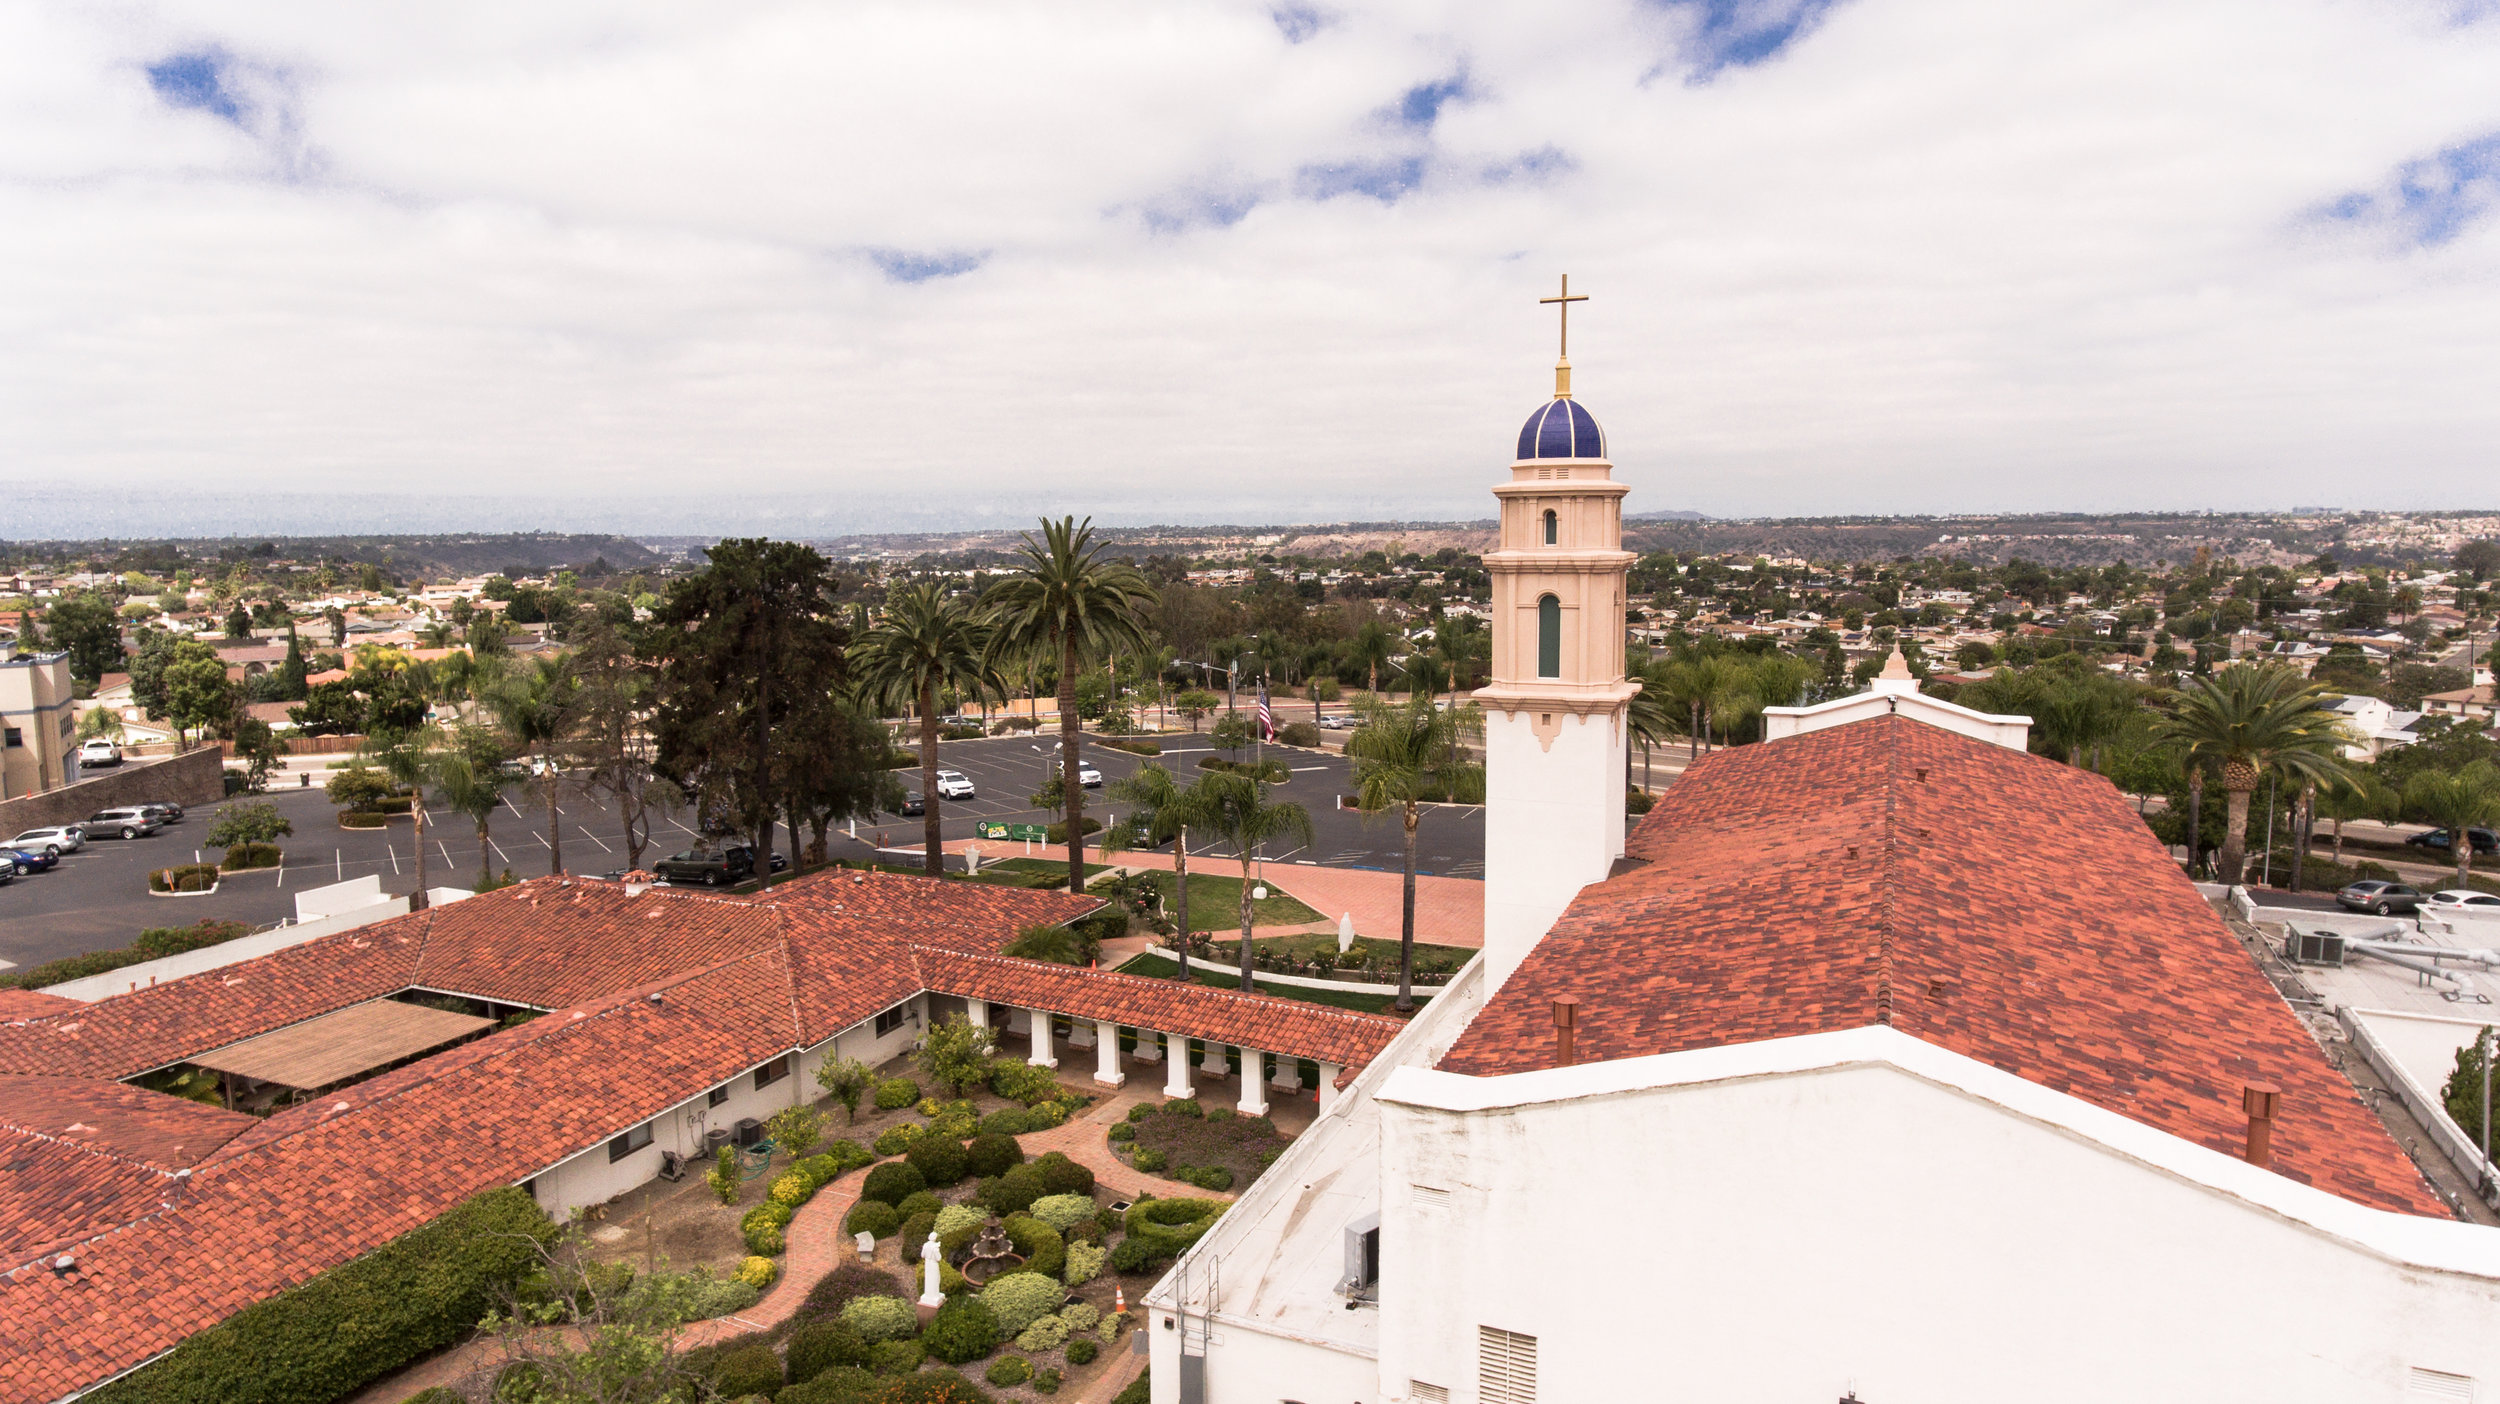 St. Therese Parish Restoration Construction in San Diego